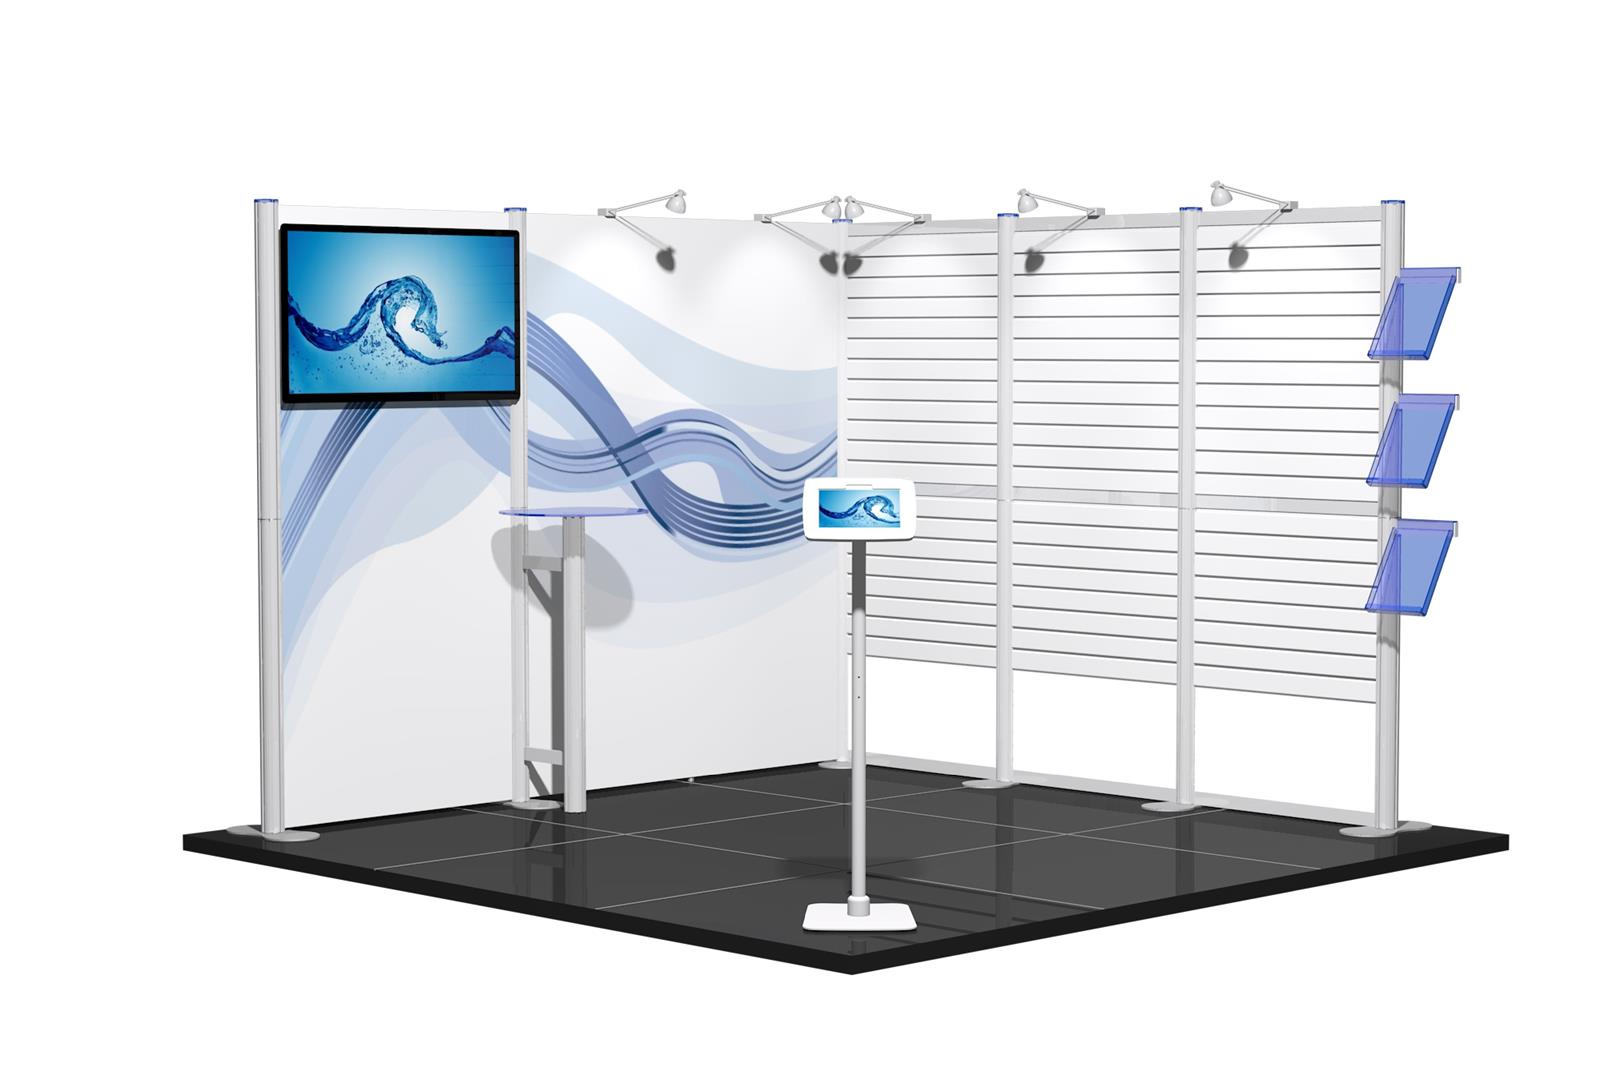 Centro 3m x 3m Modular Exhibition Stand - C3x3-2a